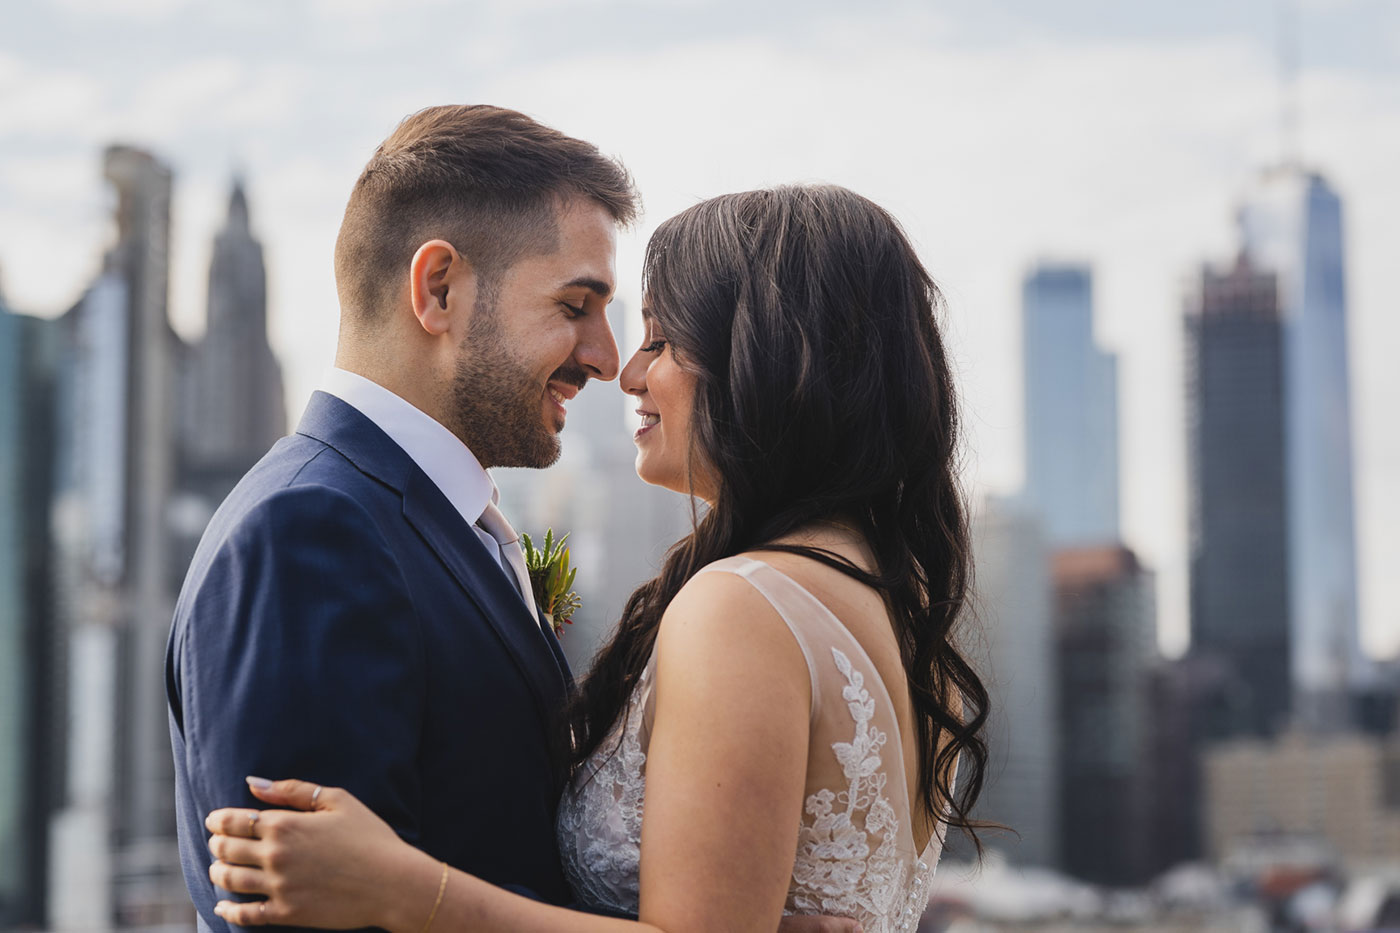 Couple Portrait from an elopement at Jane's Carousel in Brooklyn Bridge Park by Weddings by Hanel